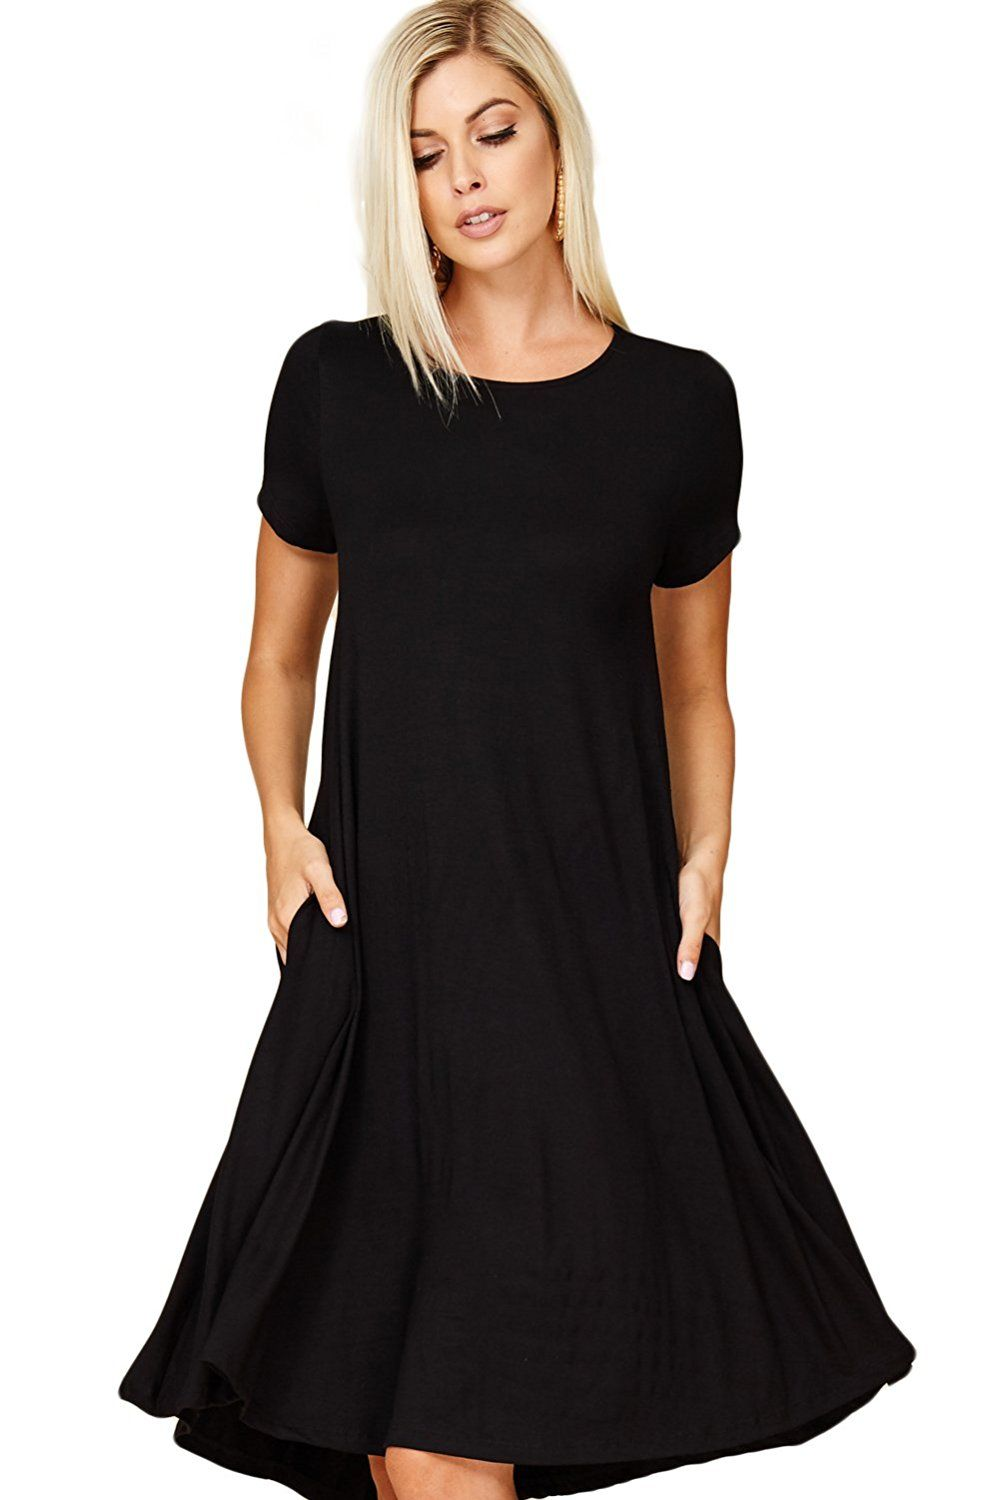 b8101b2360 Annabelle Women's Comfy Short Sleeve Scoop Neck Swing Dresses with Pockets  at Amazon Women's Clothing store